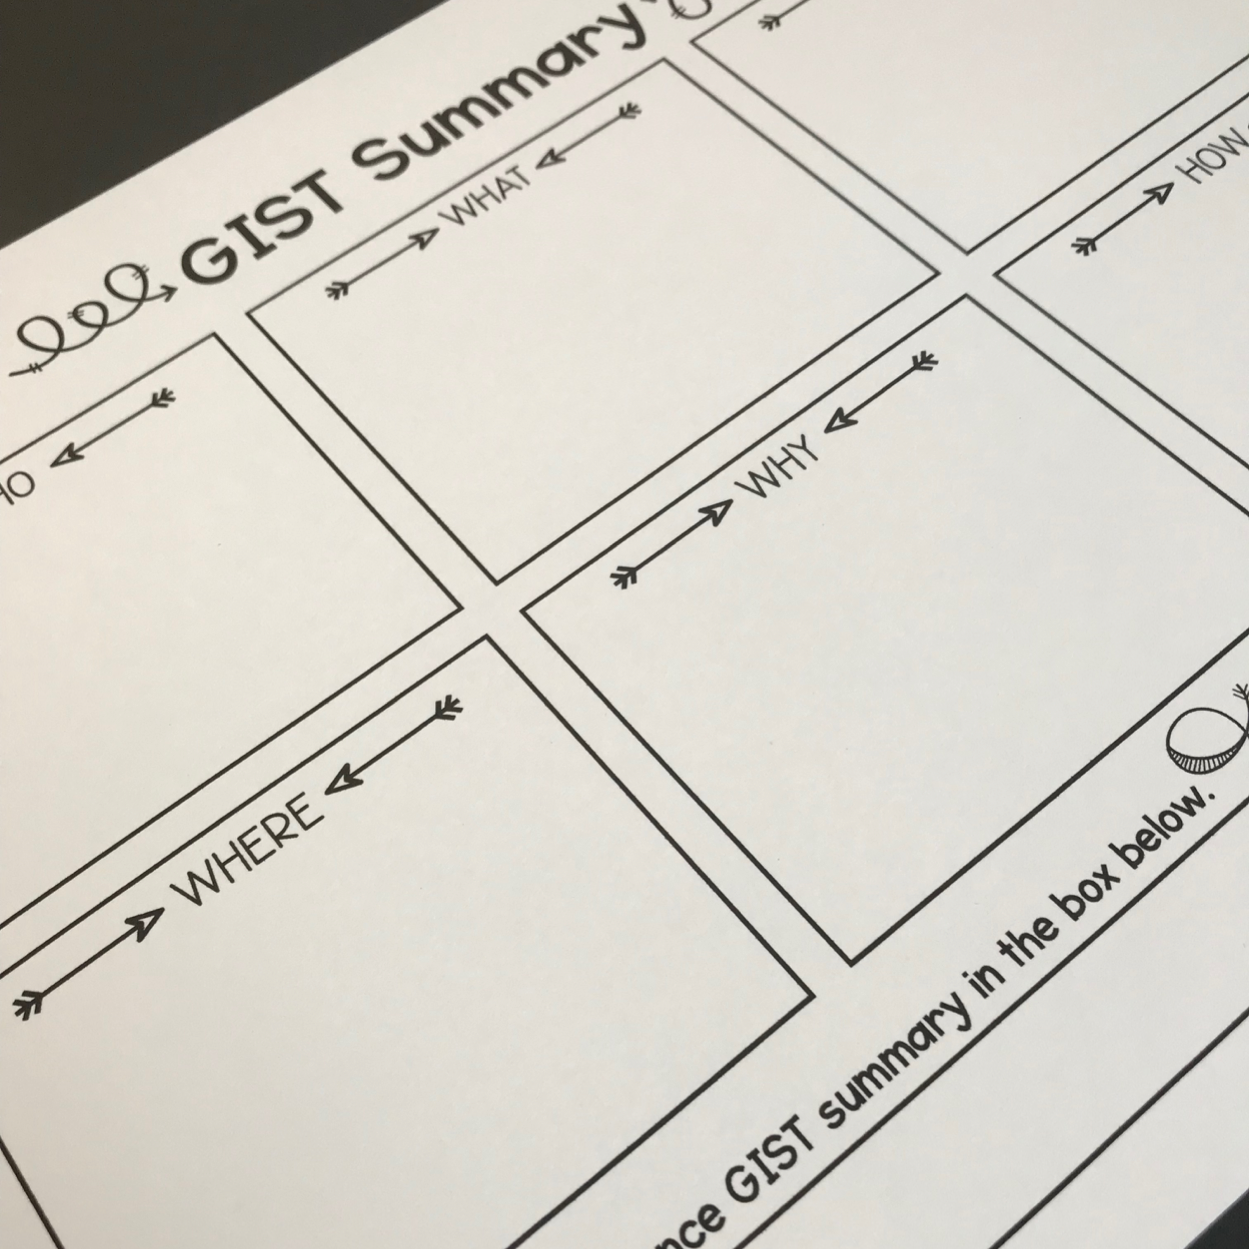 GIST Summary Worksheet